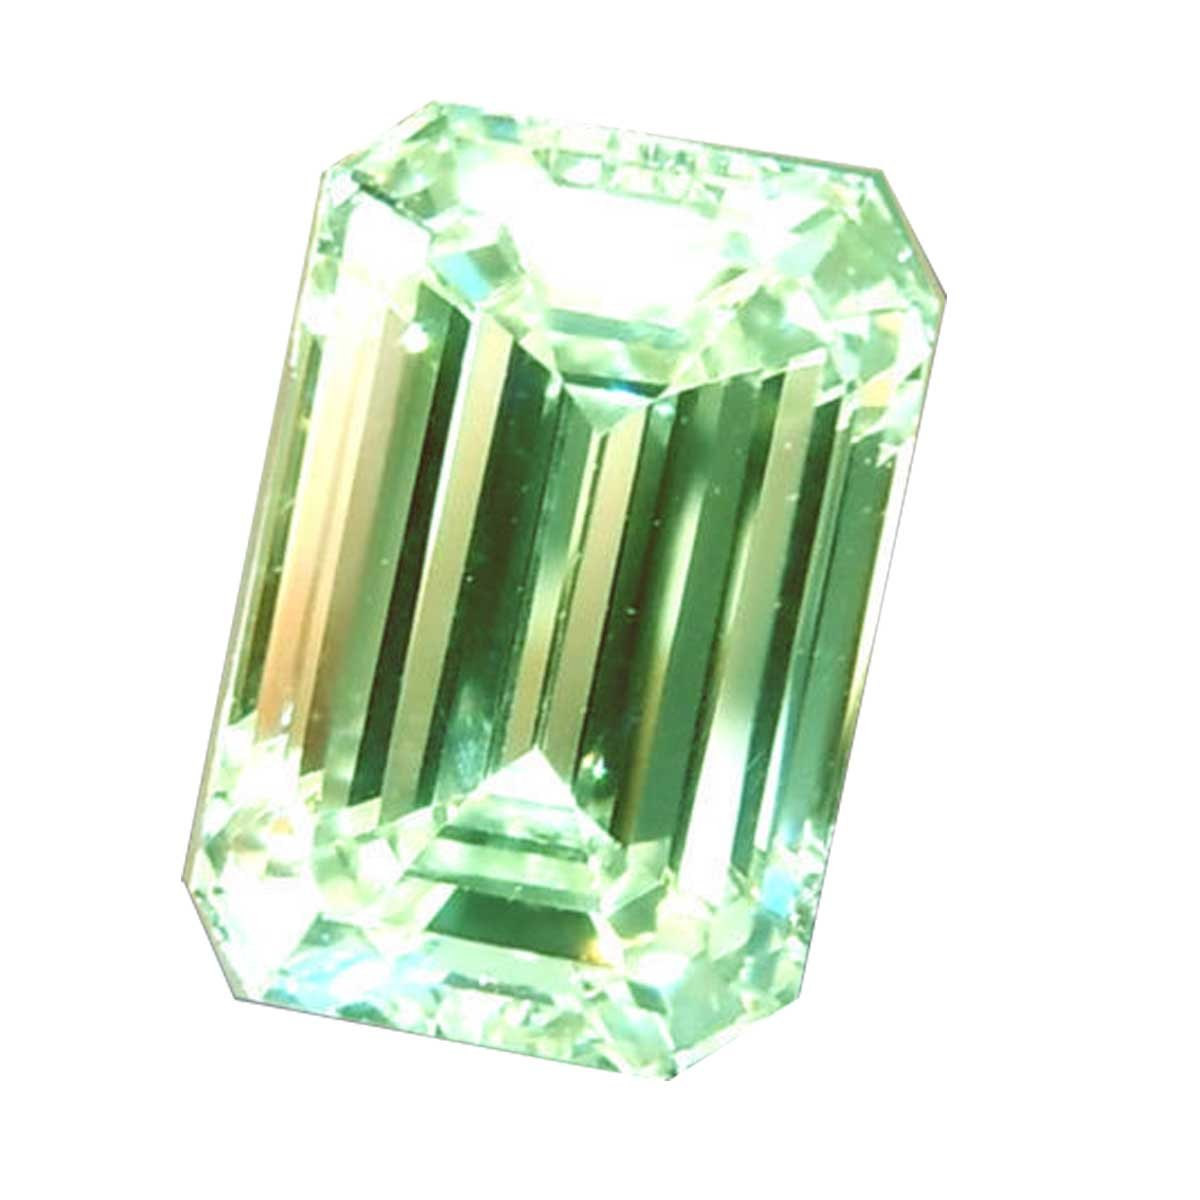 RINGJEWEL 9.67 ct VS2 Loose Moissanite Emerald-Cut Use 4 Pendant/Ring Off White Light Green Color